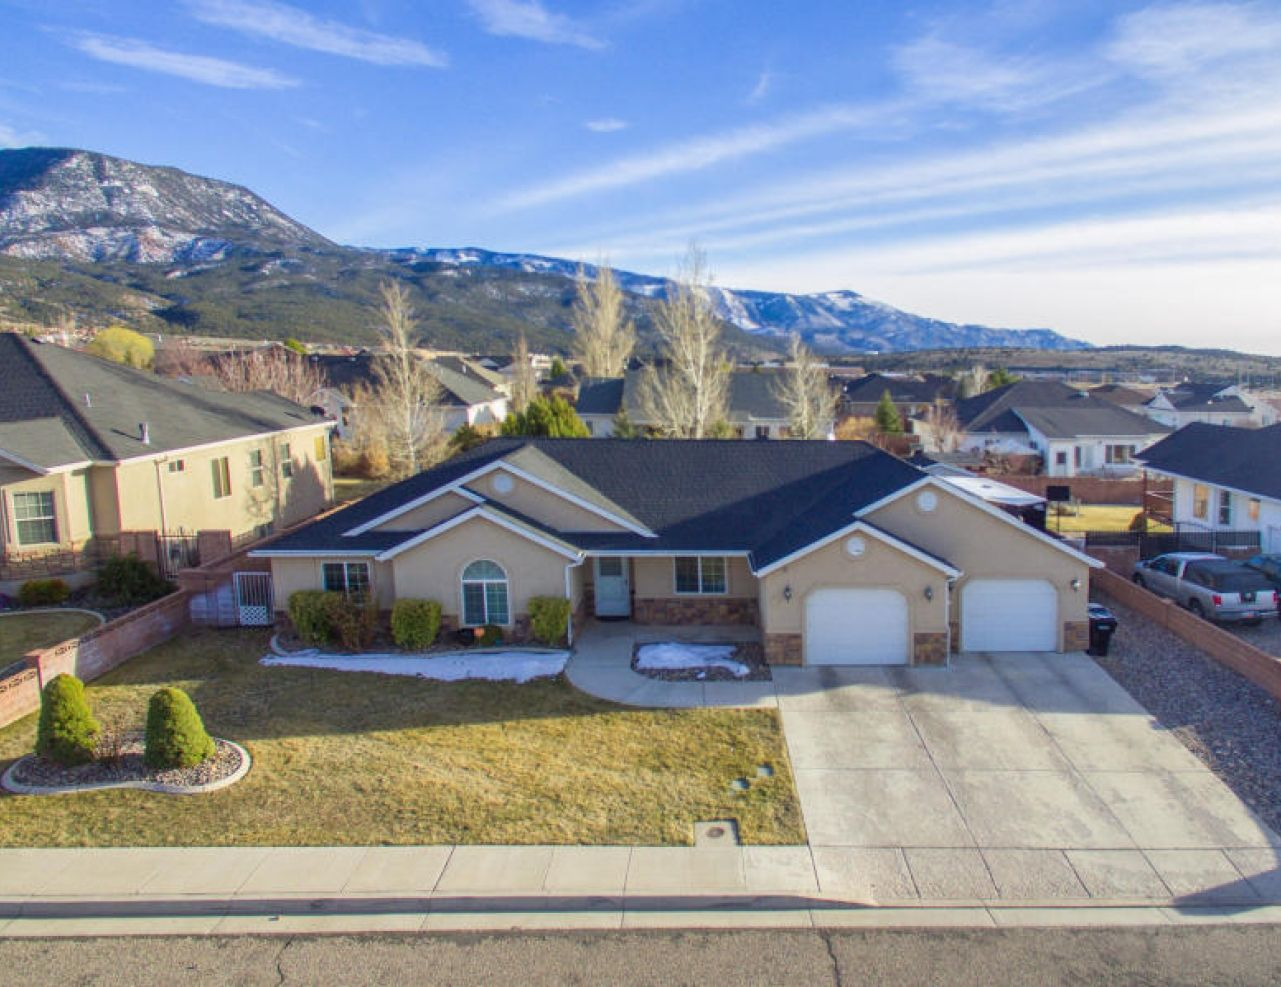 Just listed home for sale in Cedar City, Utah. Located on